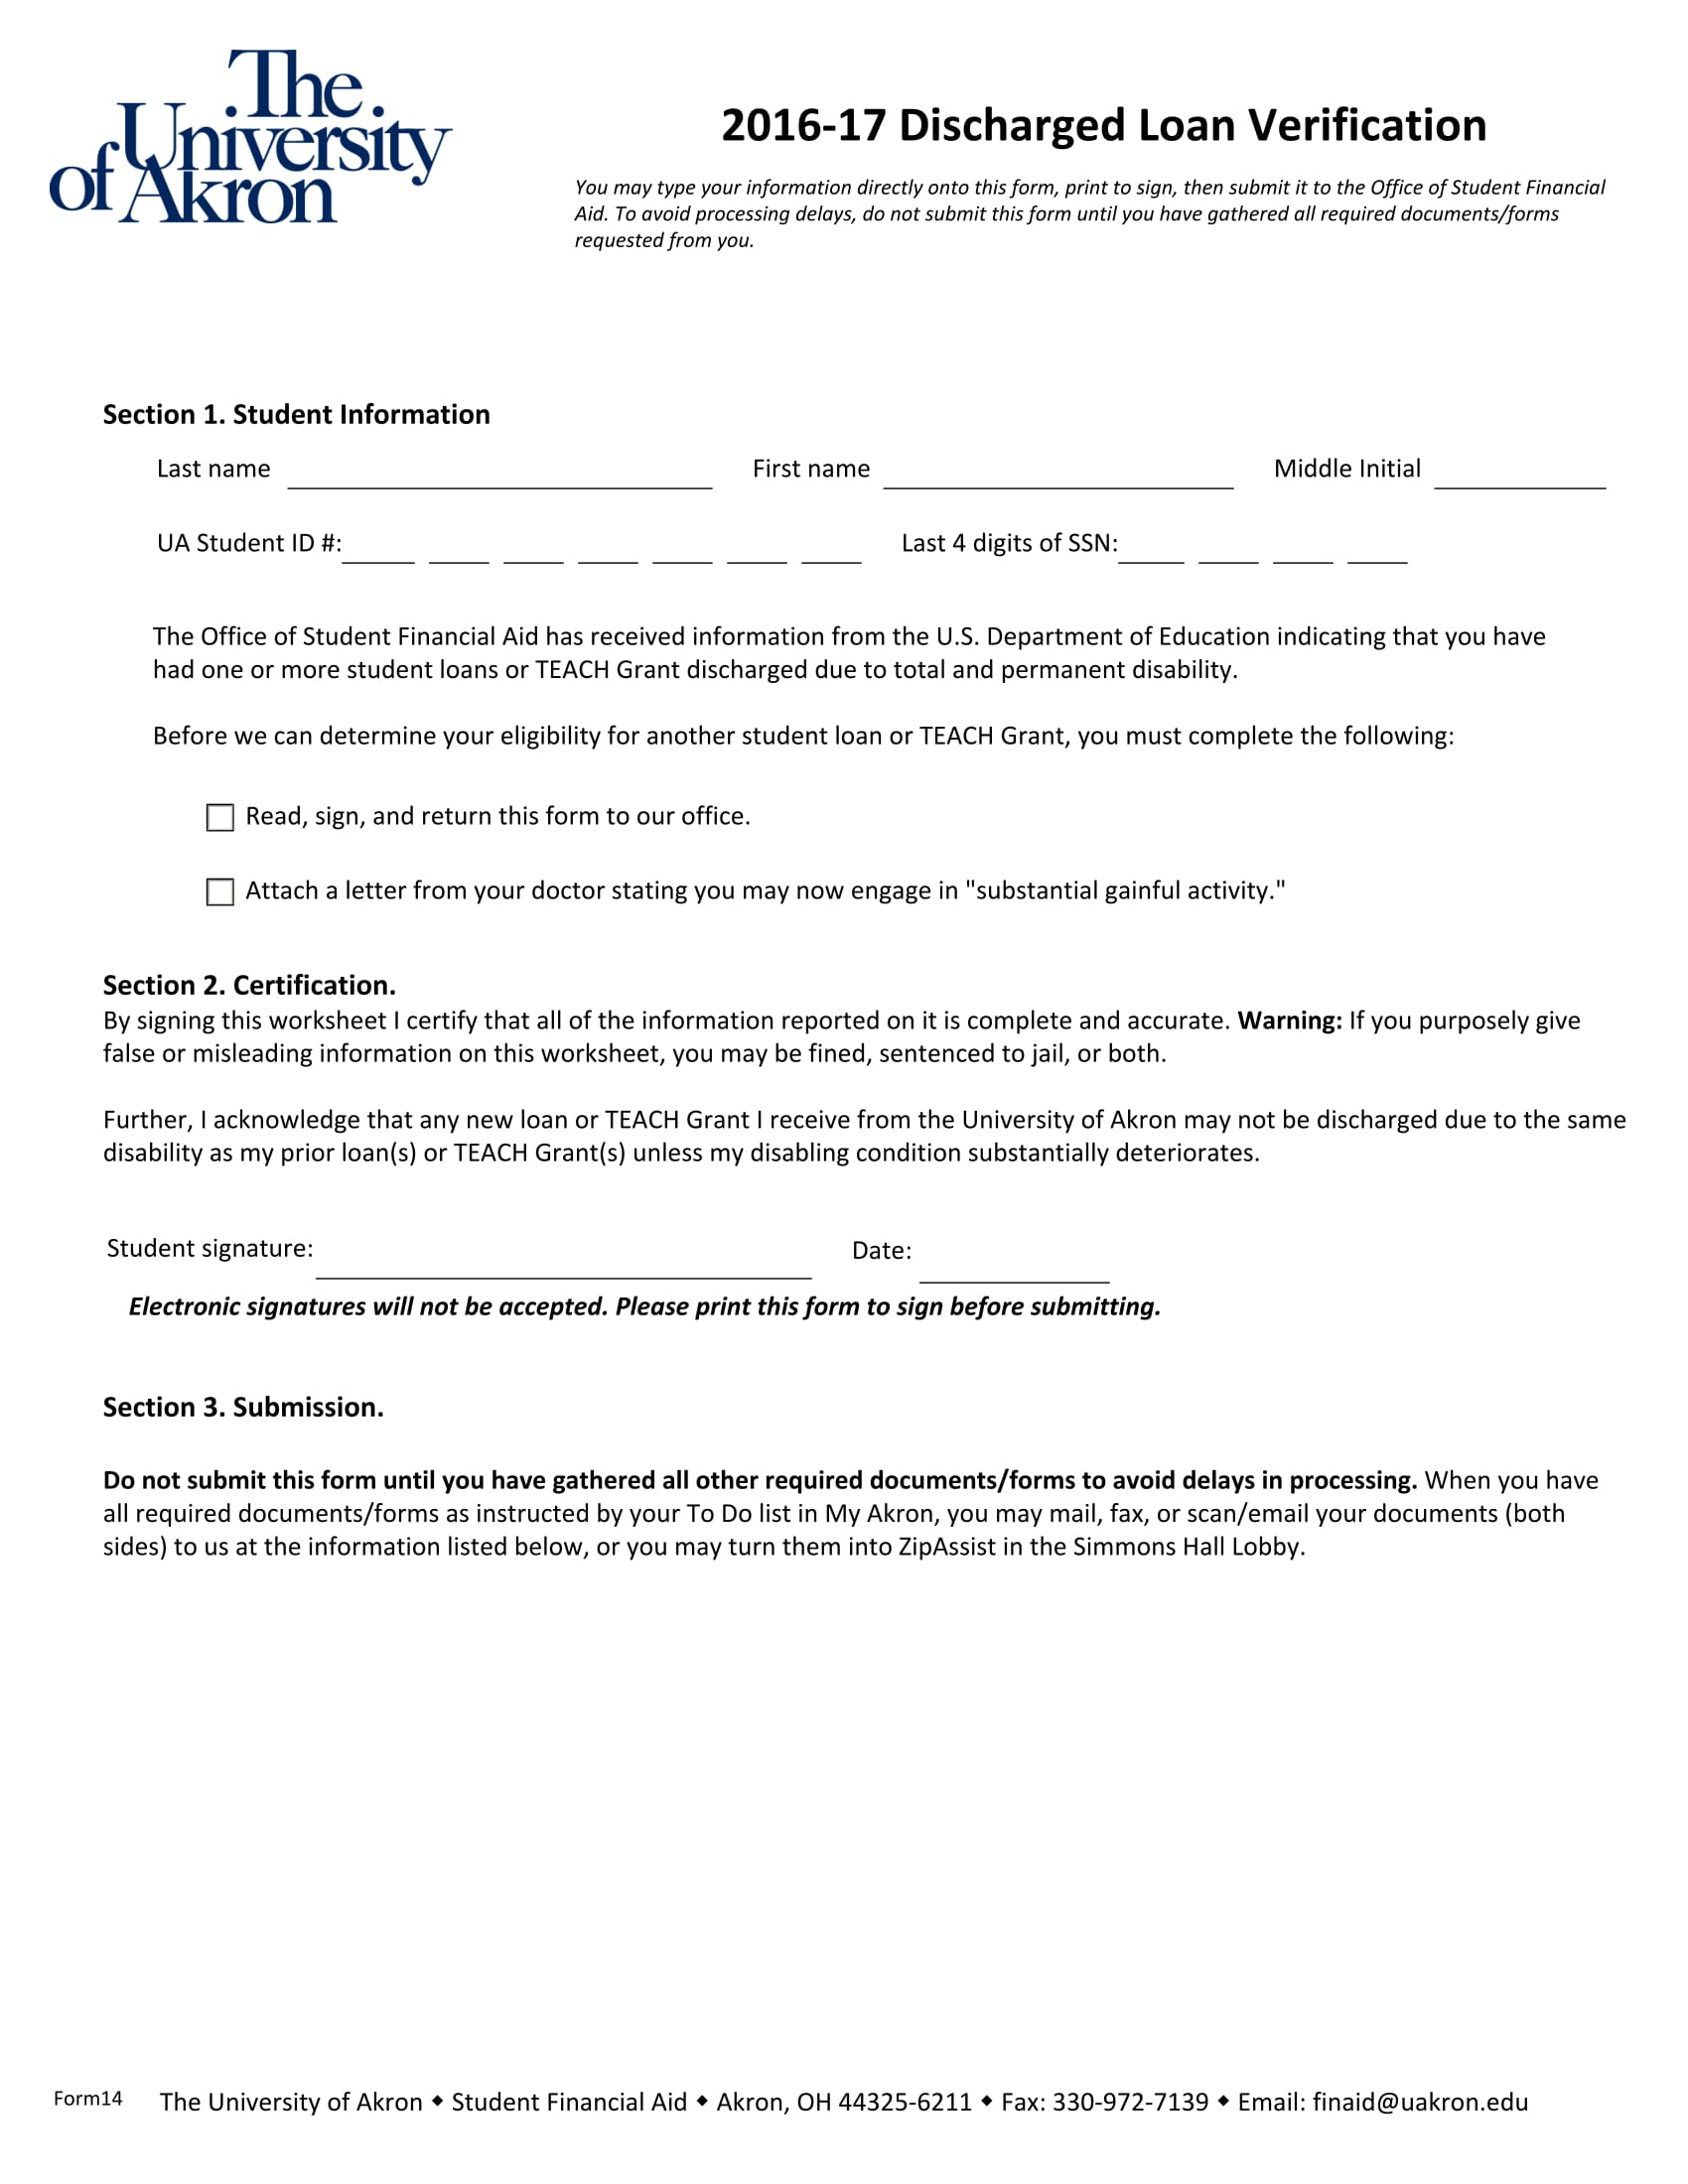 discharged loan verification form 1